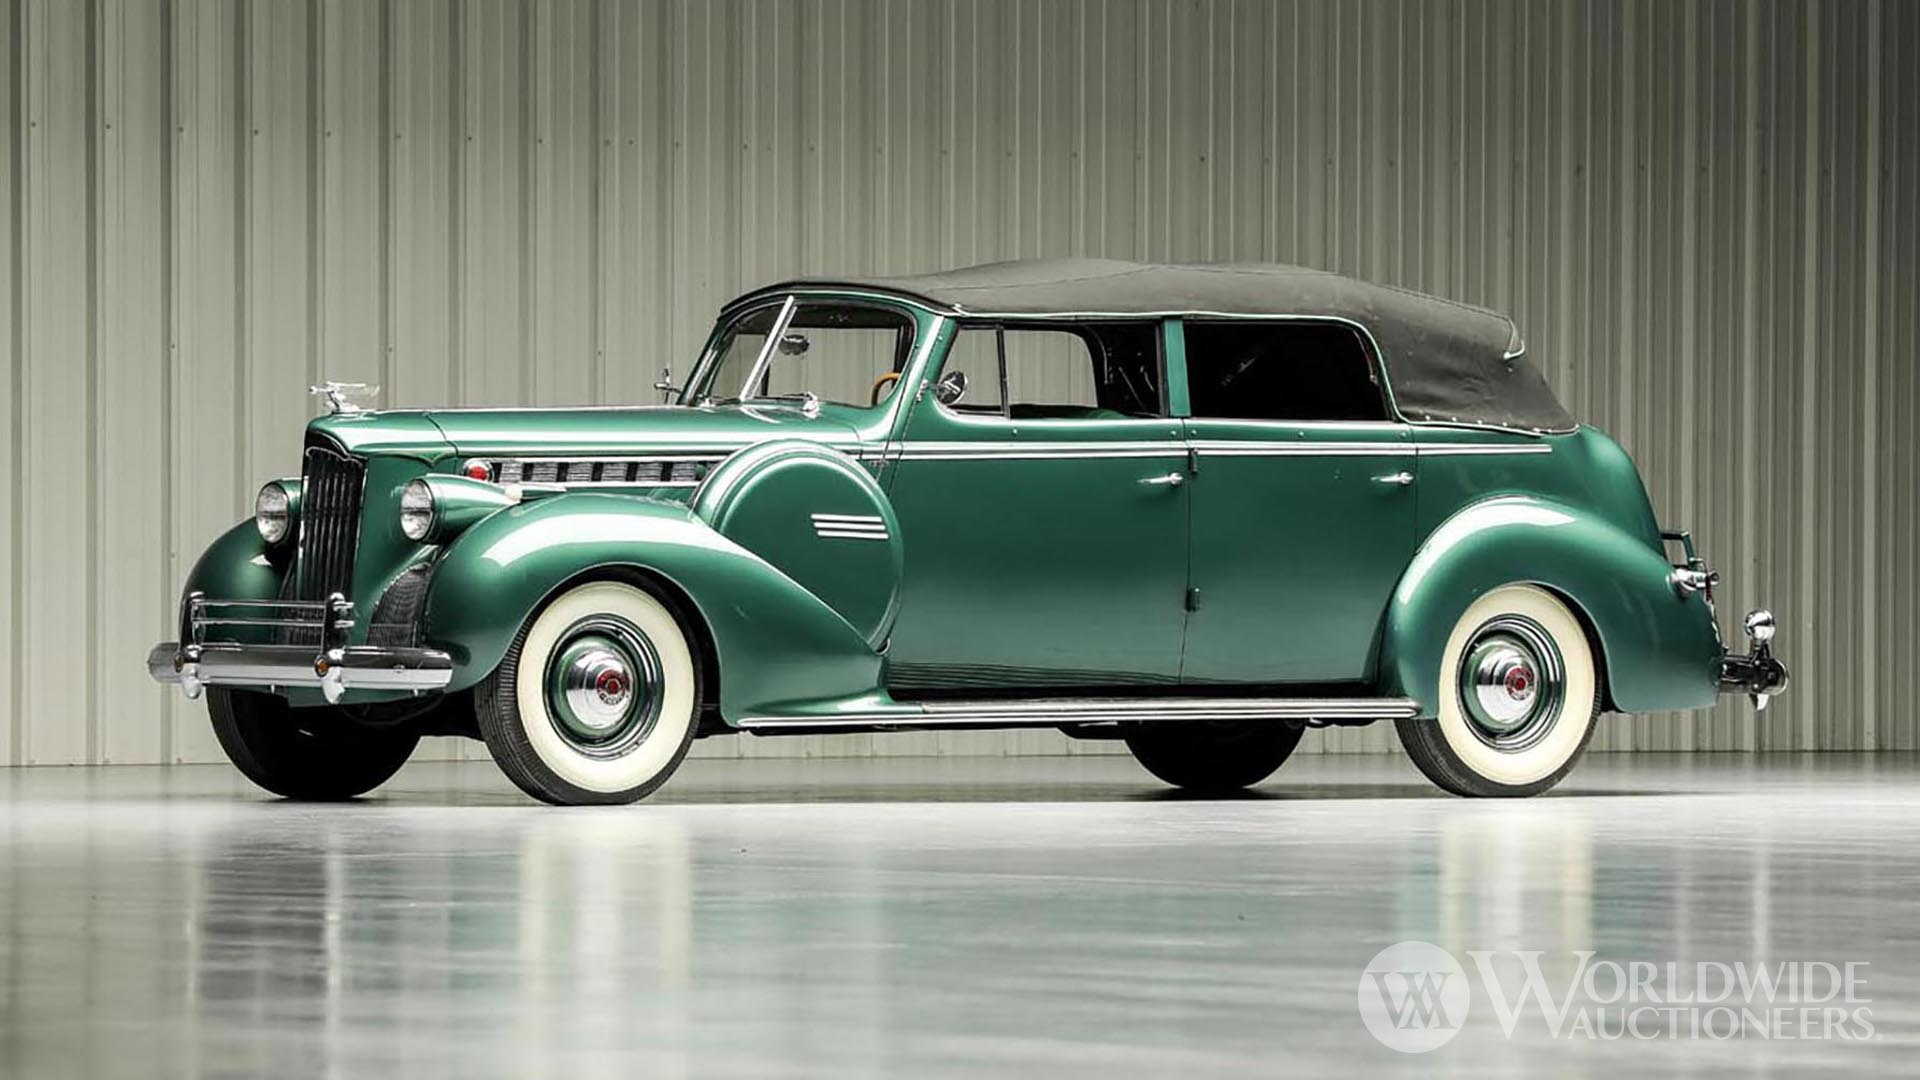 1940 Packard Super 8 Model 1807 Convertible Sedan